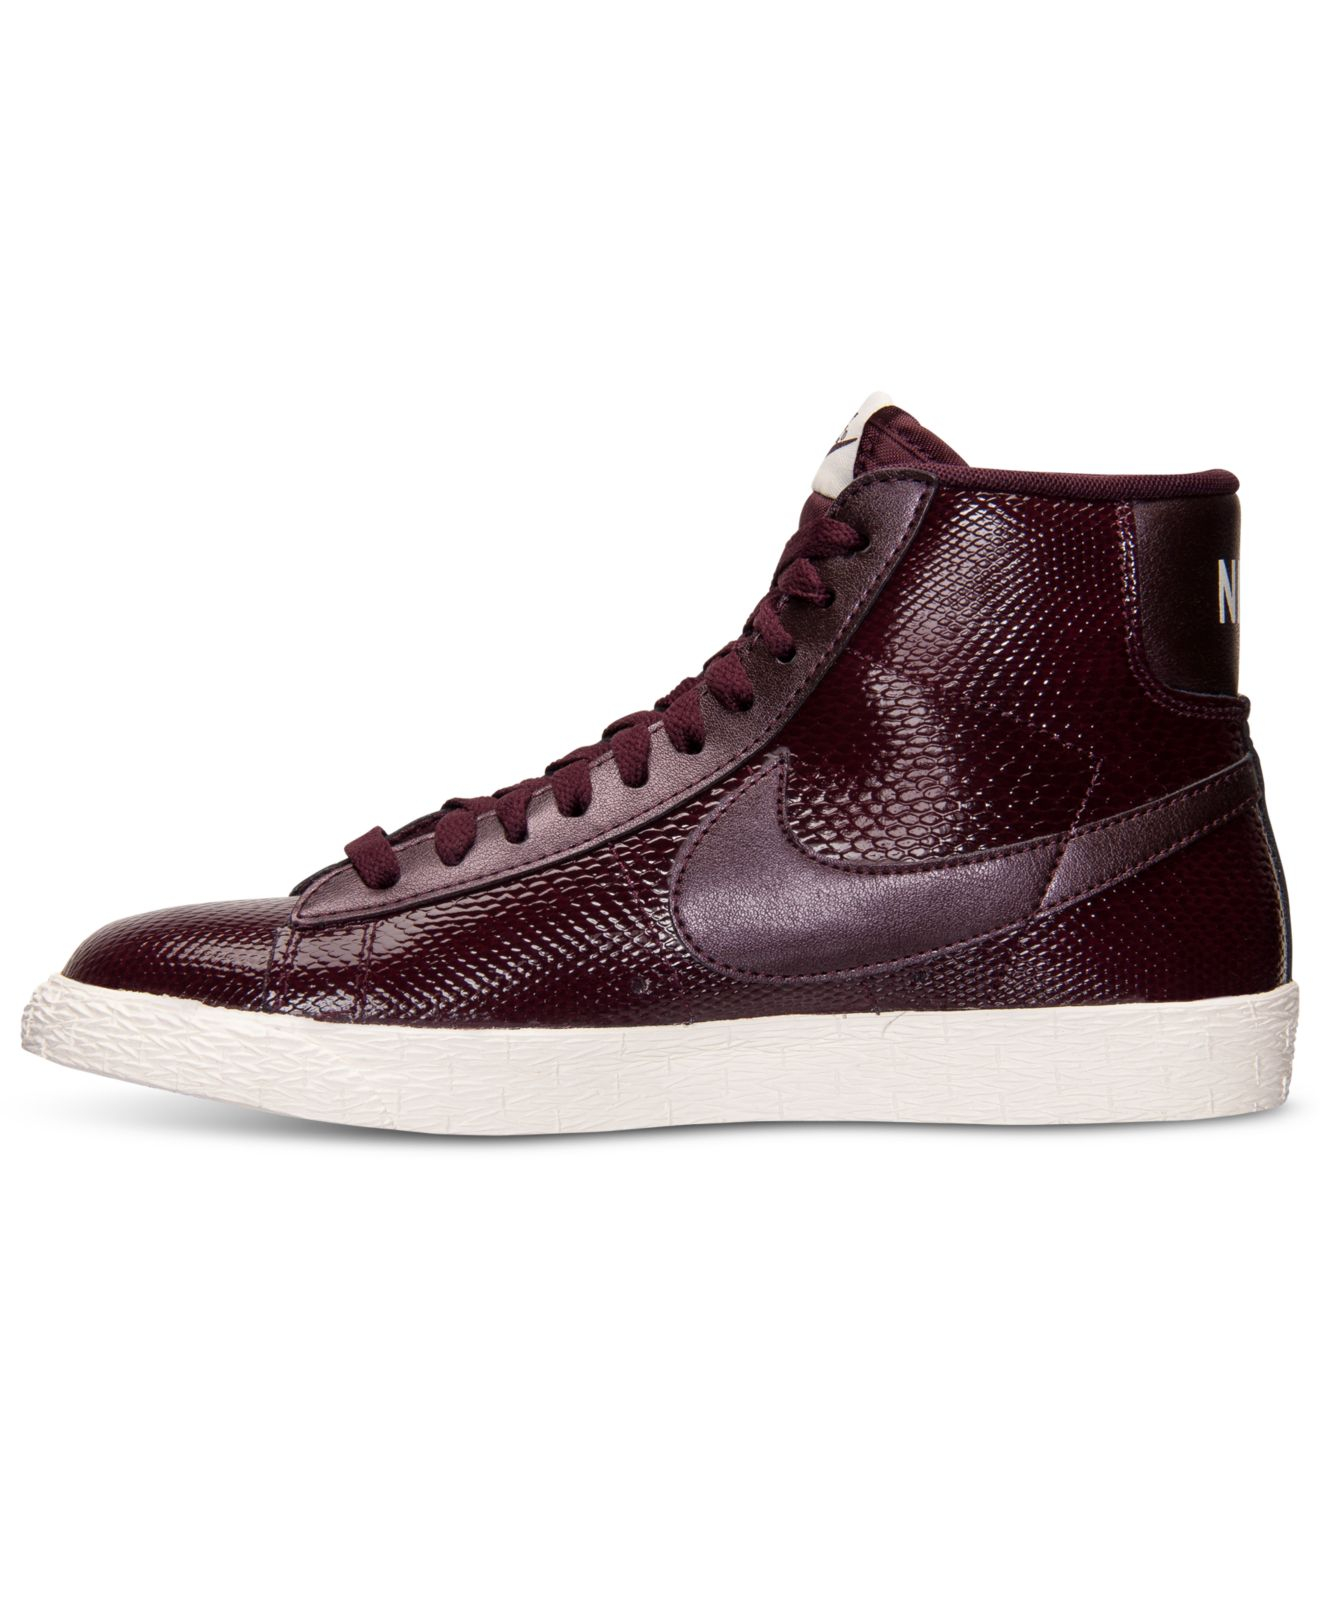 nike blazer mid premium sneakers in purple lyst. Black Bedroom Furniture Sets. Home Design Ideas